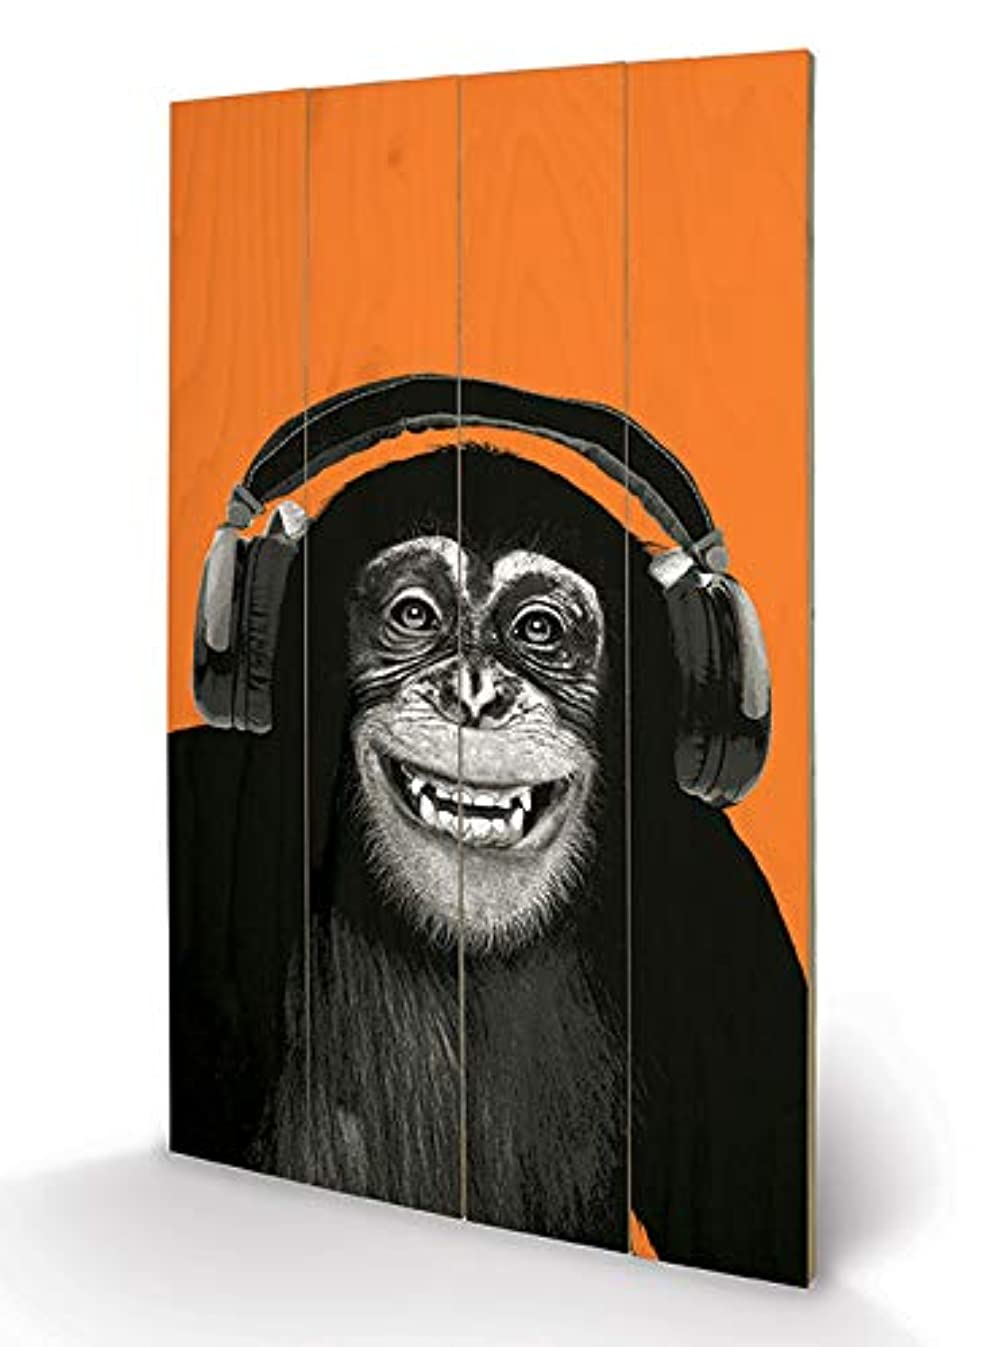 CHIMPANZEE HEADPHONESImages & Pictures, Wooden wall art, Size: 45 x 76cm (18 x 30.4 inches)